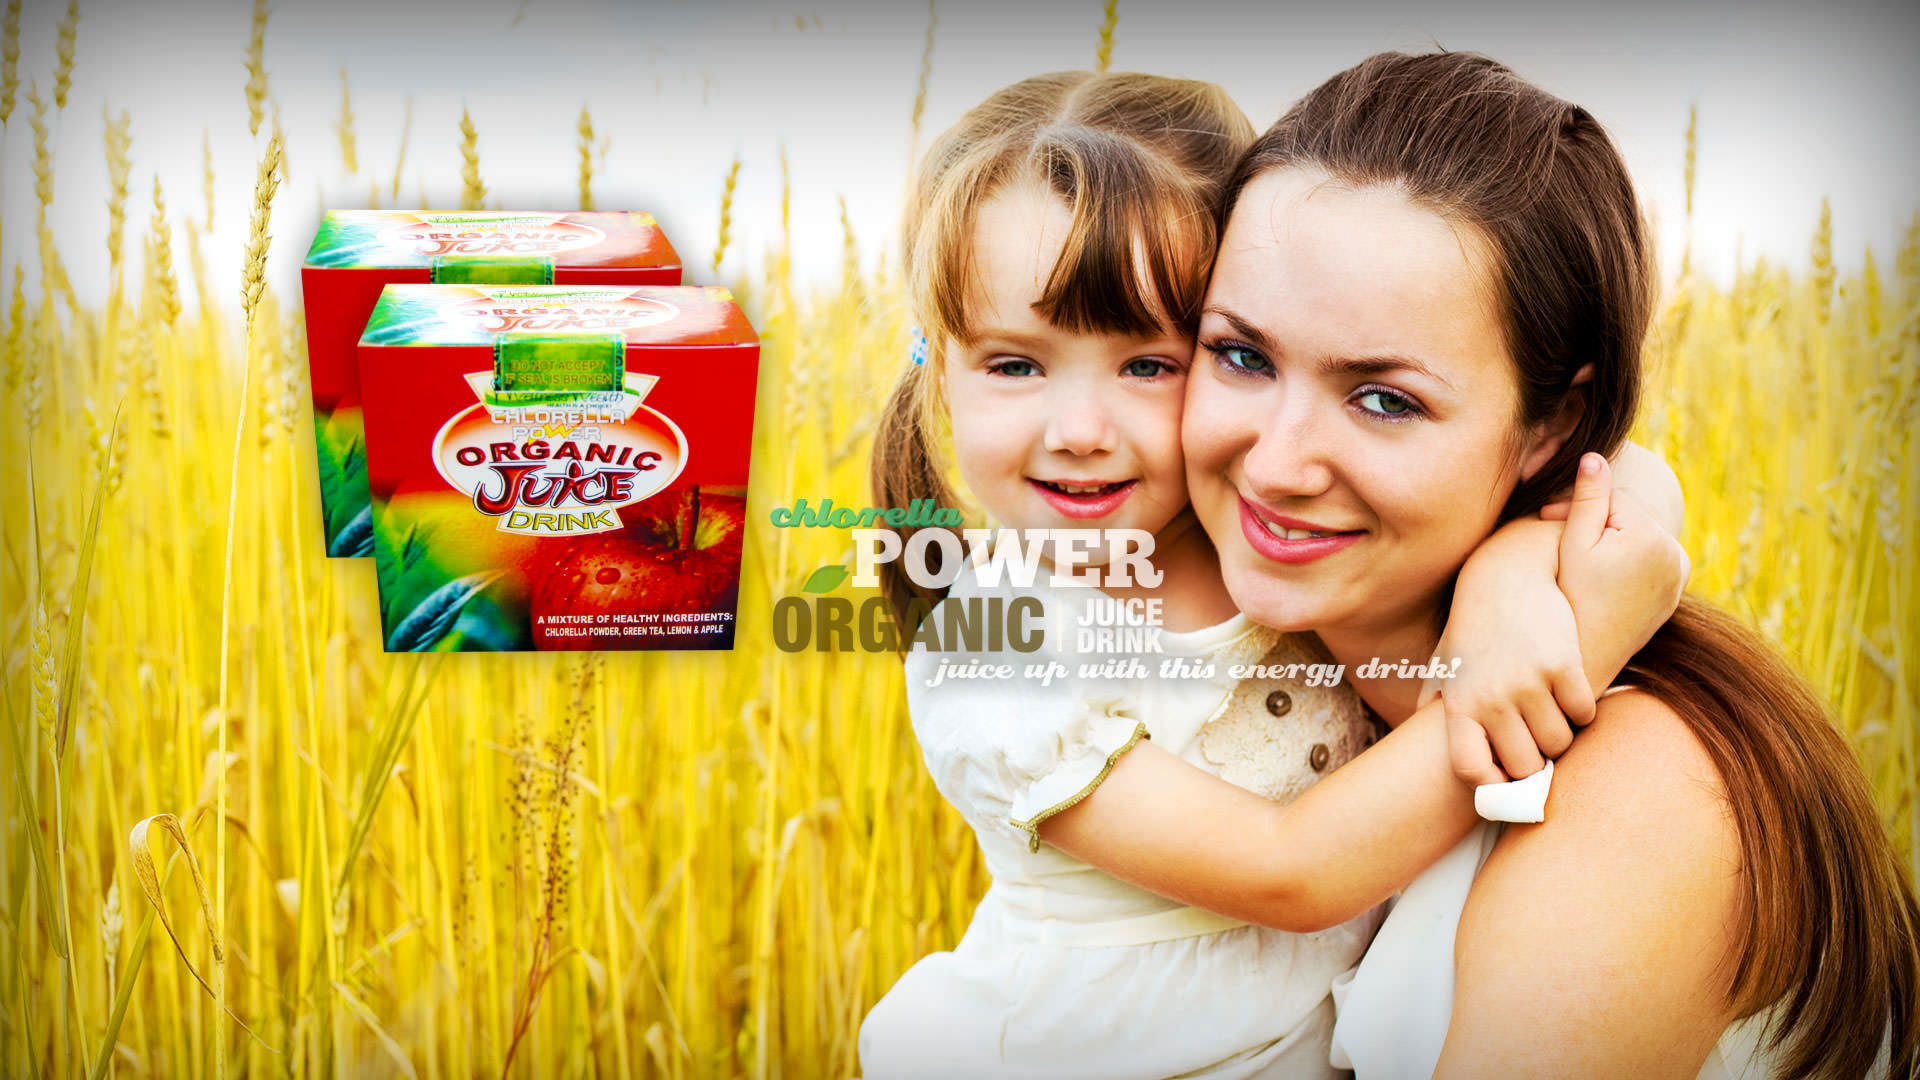 TJ Chlorella Organic Power Juice